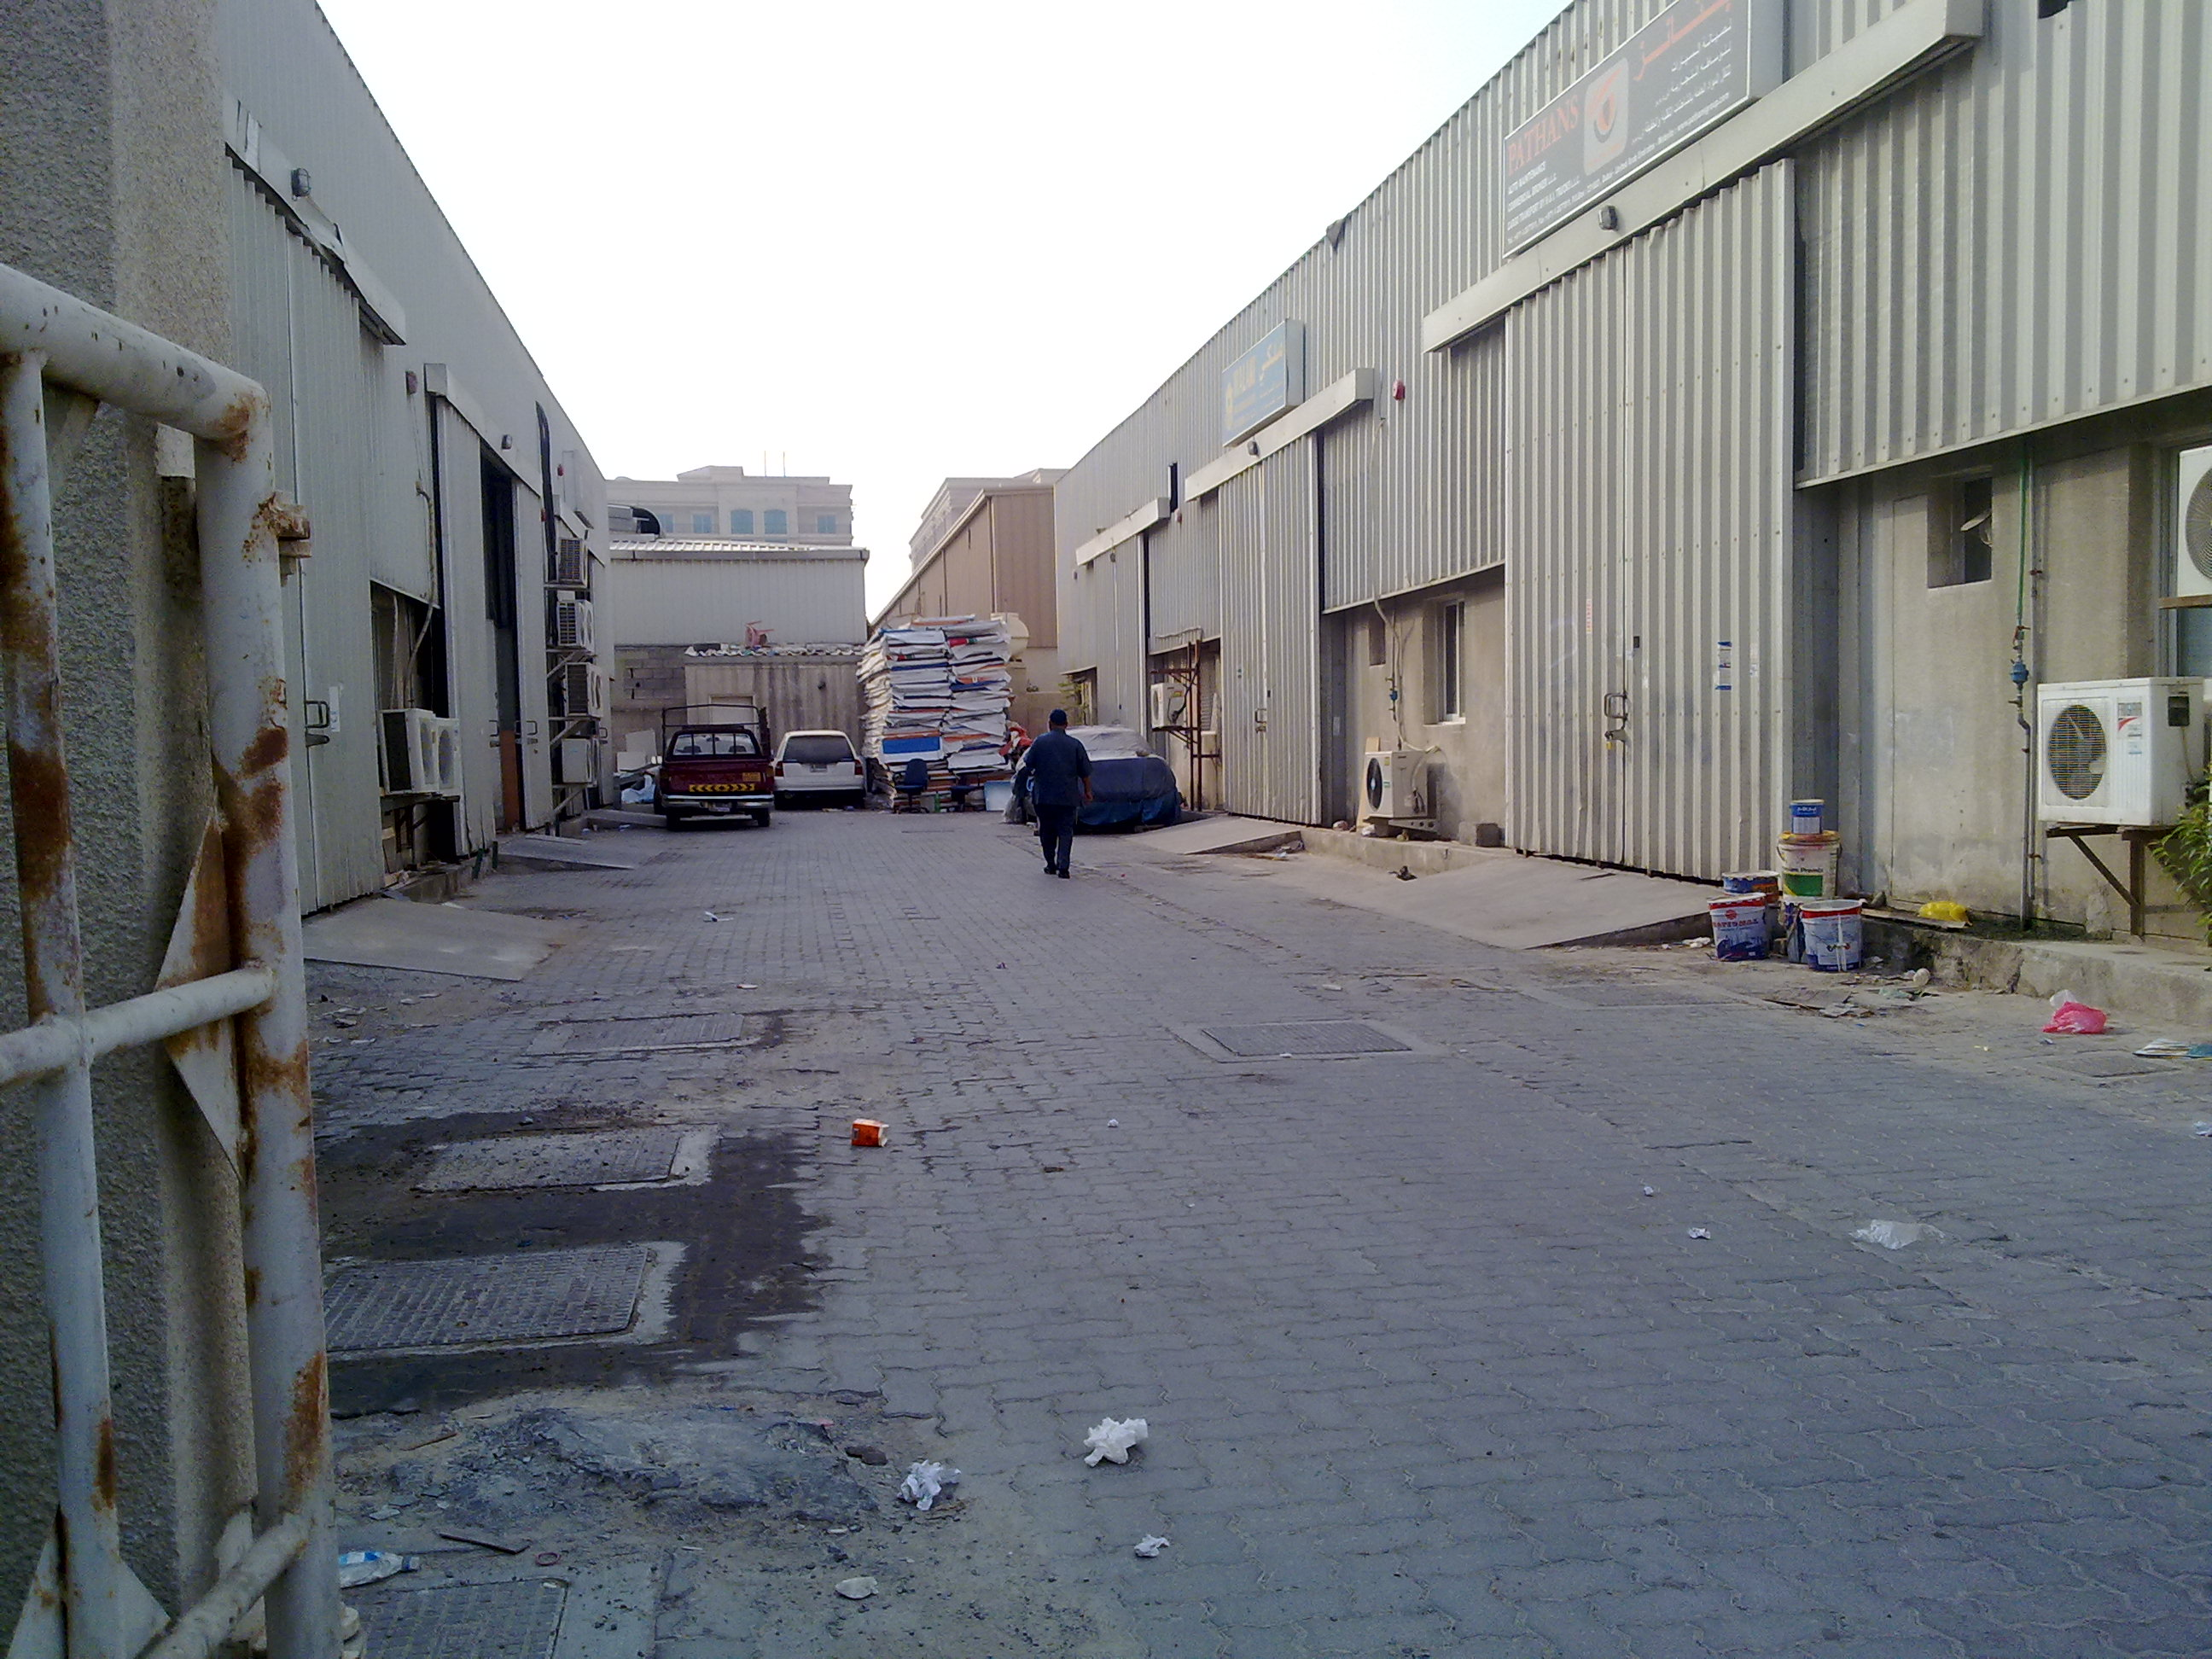 File:Al Qusais Industrial Area 1 - Dubai - United Arab Emirates